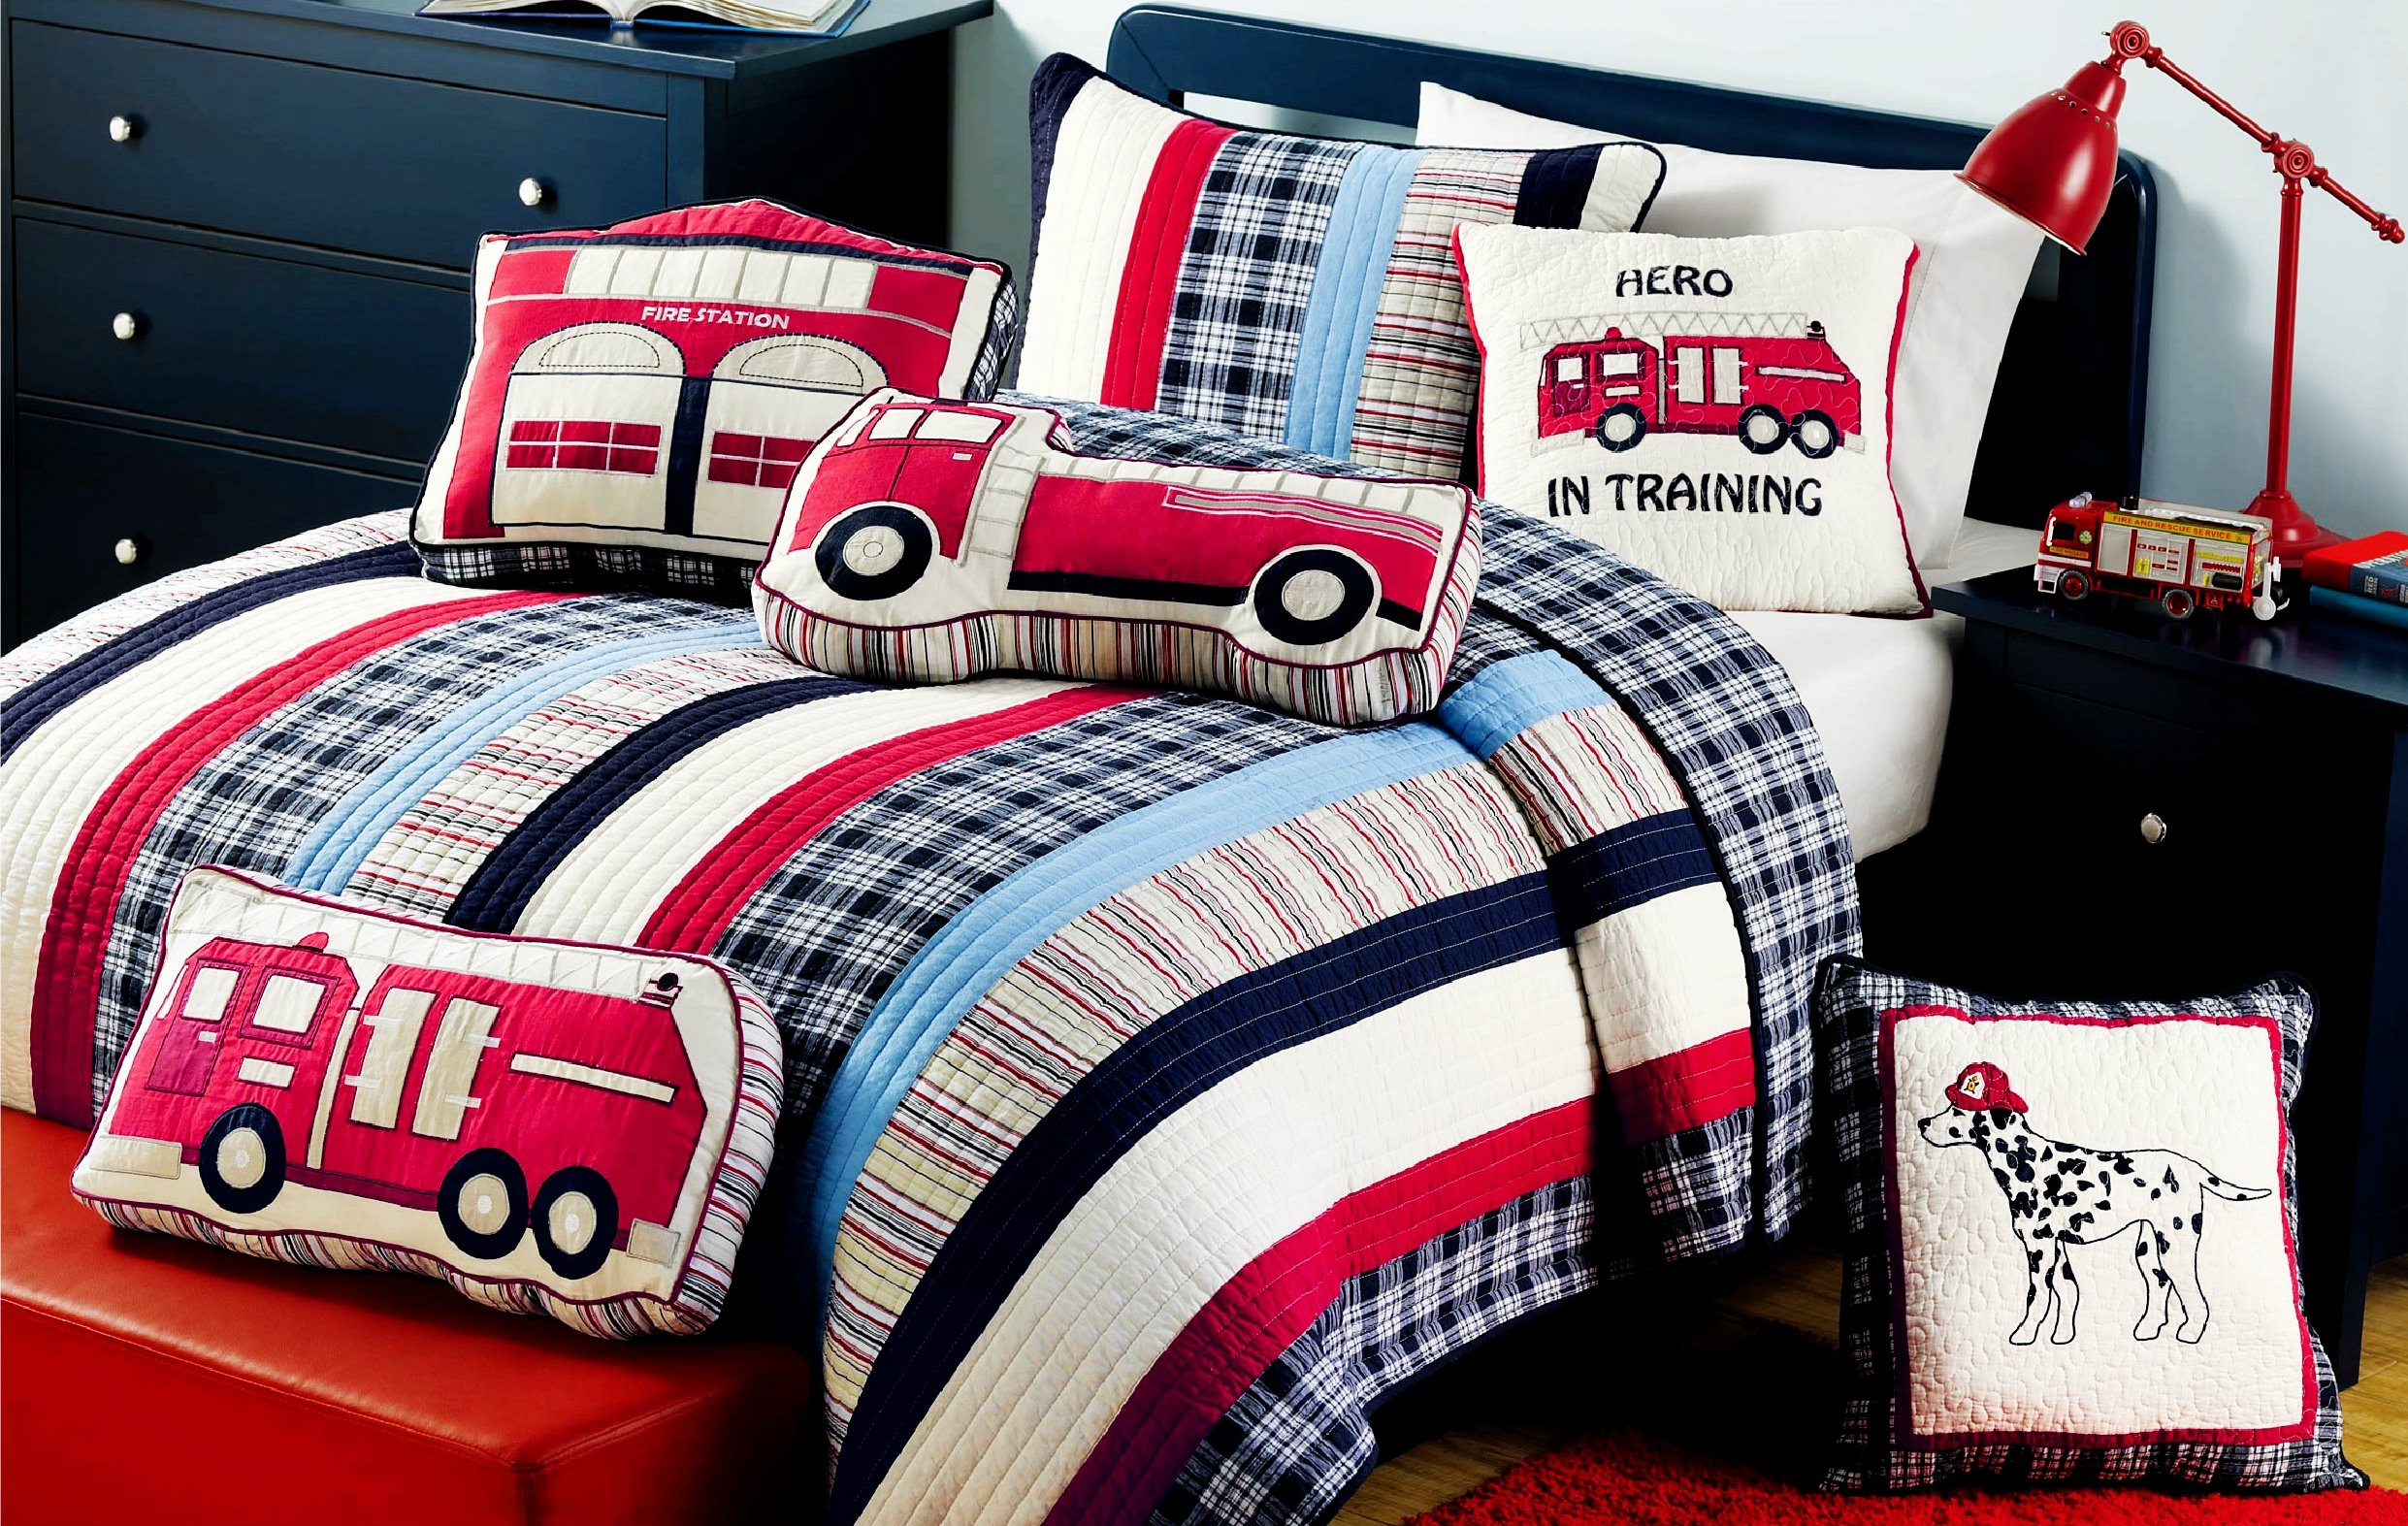 Cozy Line Home Fashions Cars Collection Bedding Quilt Set for Boy, 100% Cotton Navy/Blue/Red Grid Stripe Printed Reversible Bedspread Coverlet for Kids (Full/Queen -3 Piece:1 Quilt + 2 Shams) by Cozy Line Home Fashions